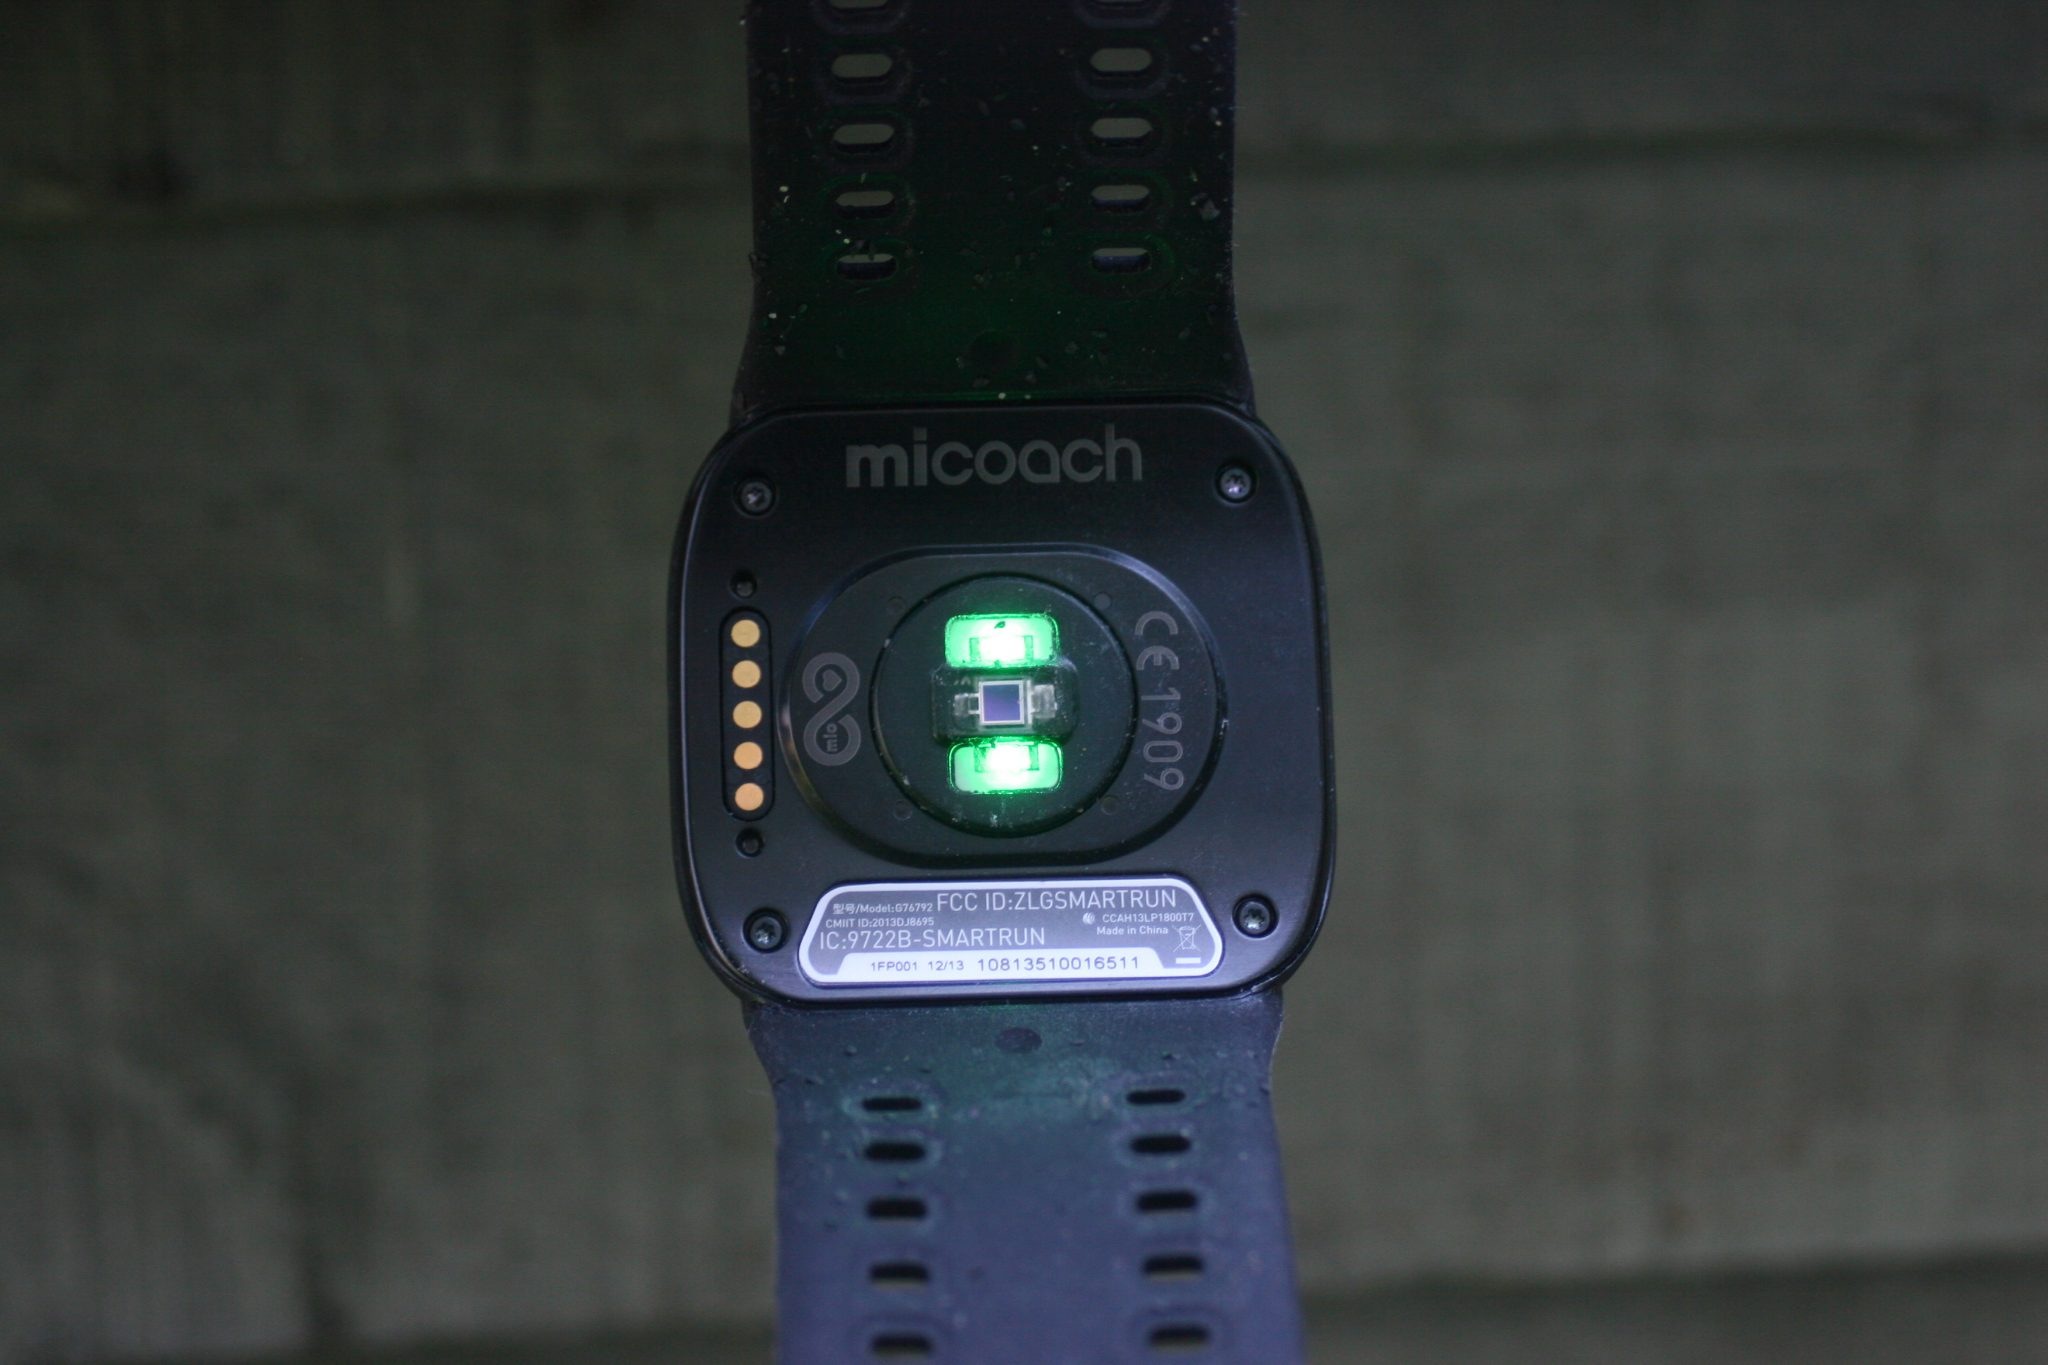 adidas micoach - note the separation of the two sensors